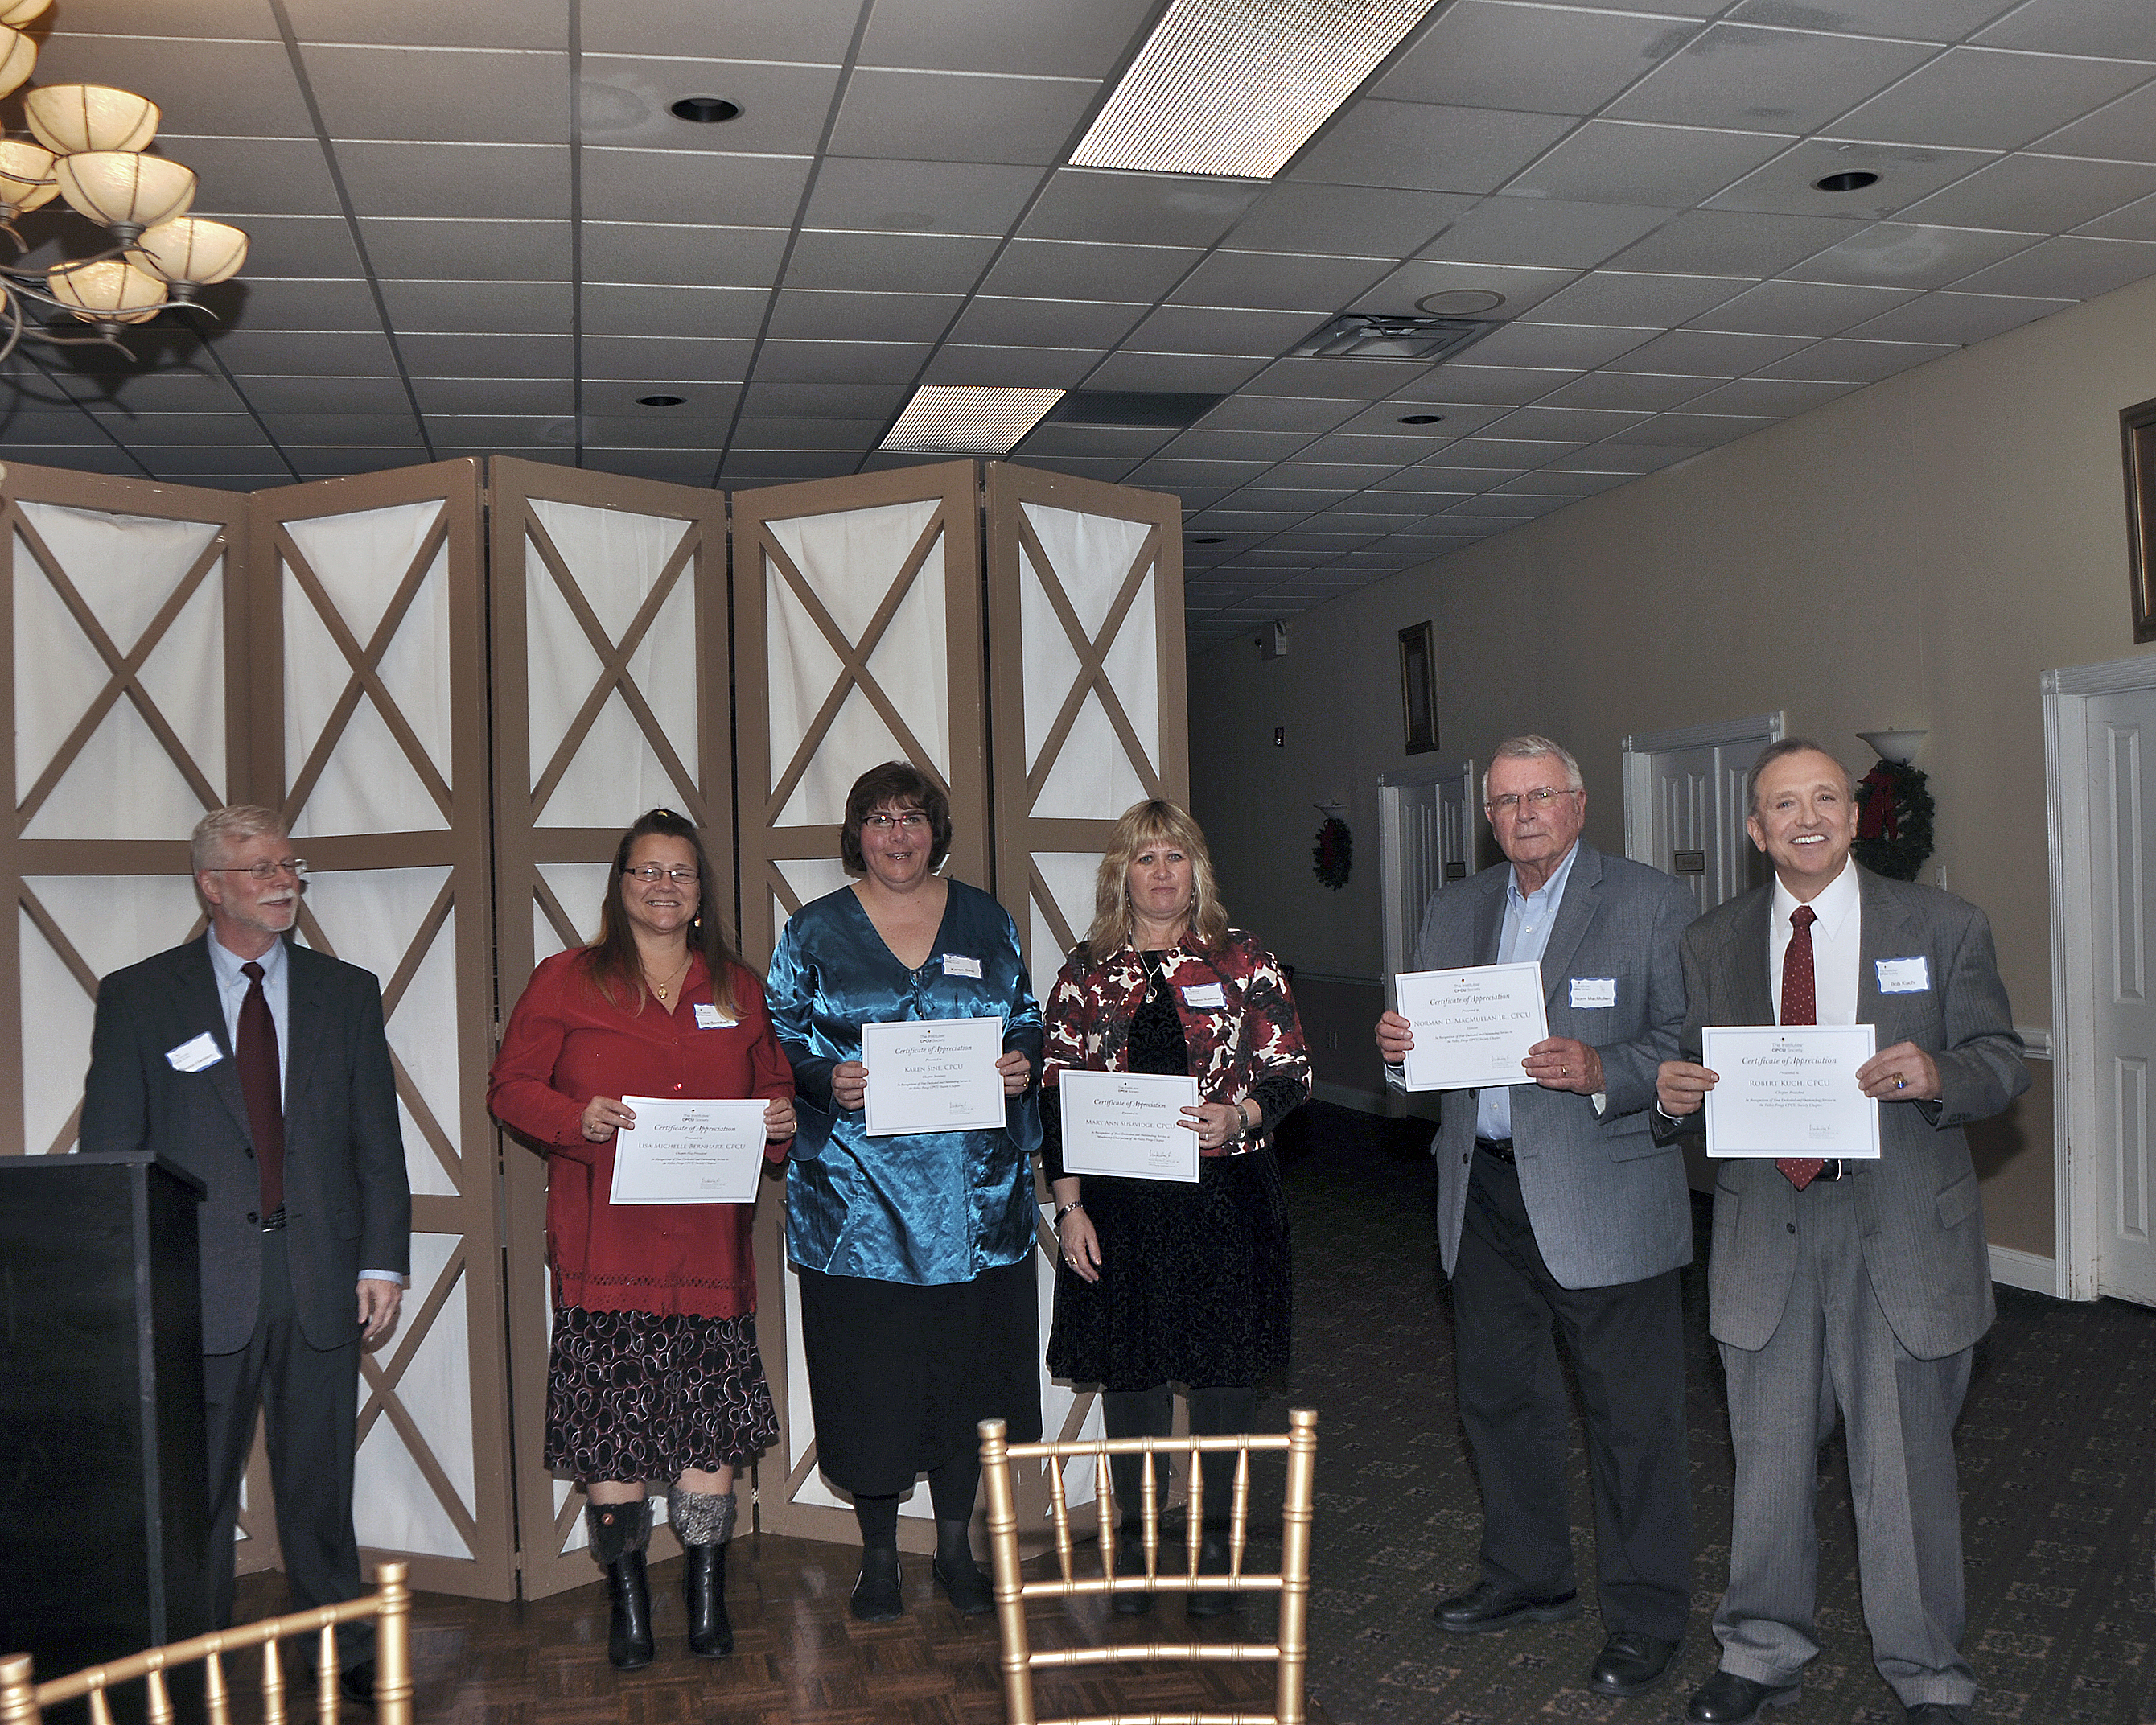 2016 Annual Business Meeting And Social Valley Forge Cpcu Society